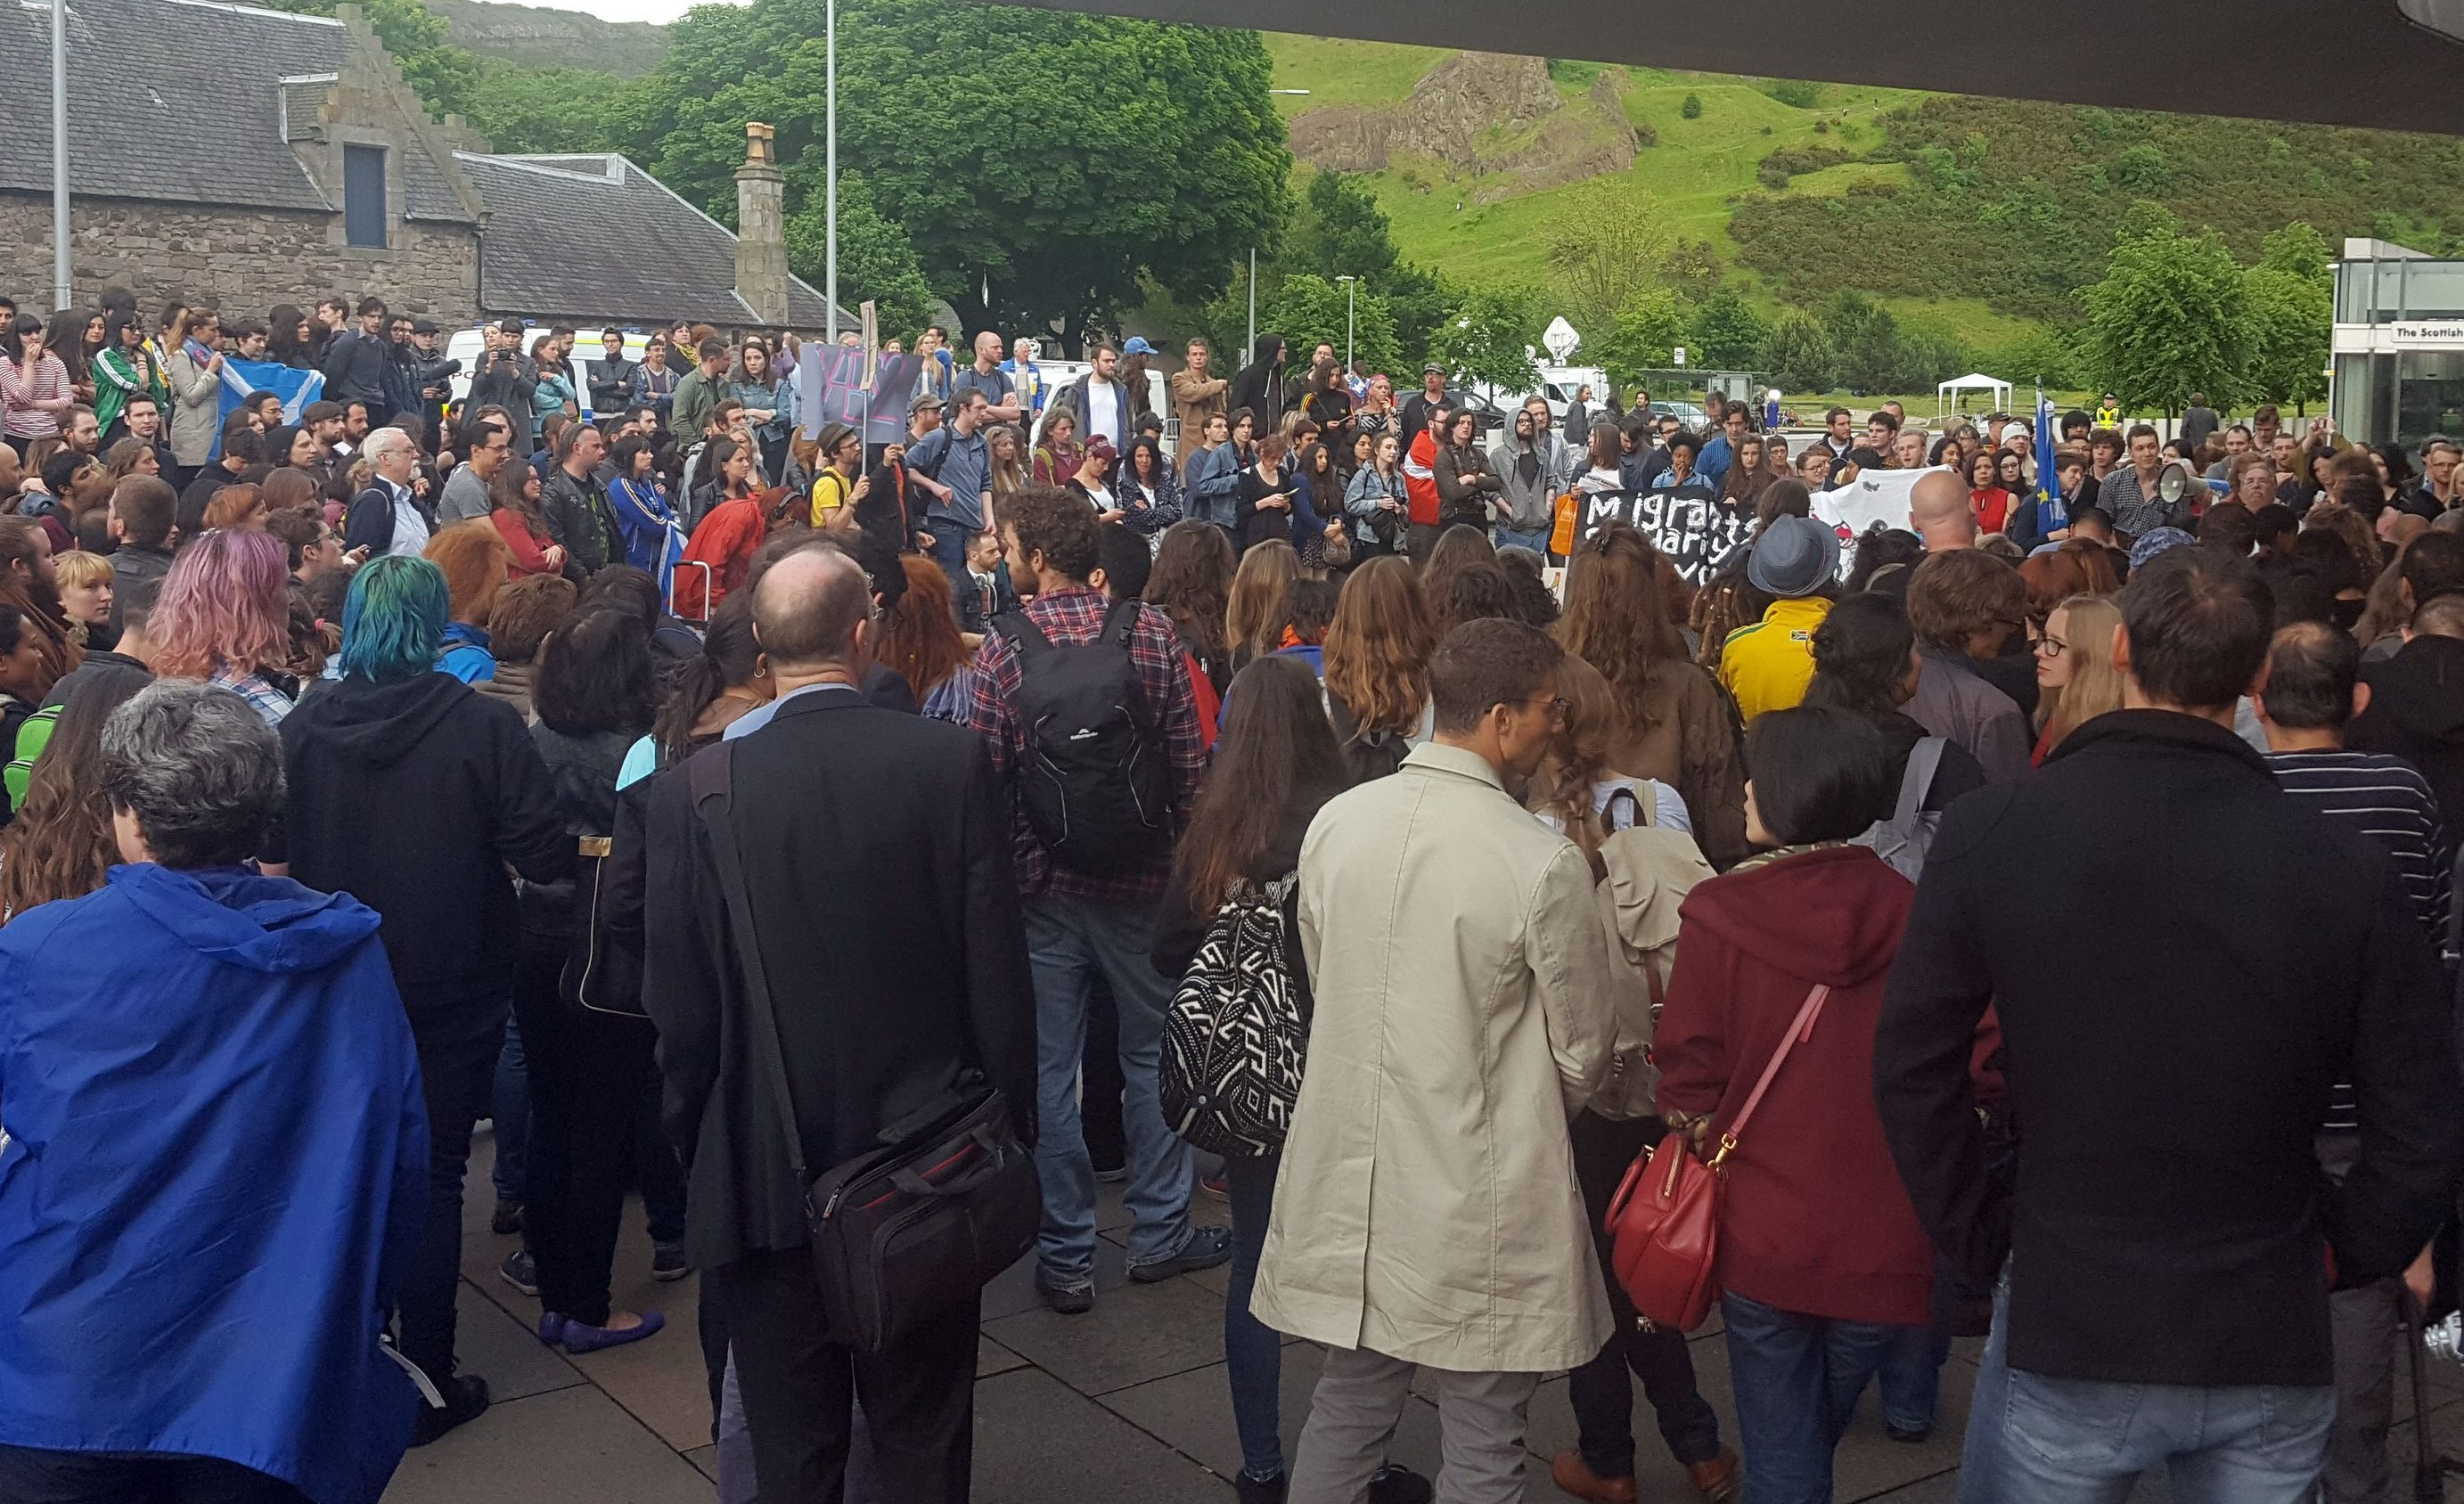 Protesters gathered outside the Scottish Parliament in Edinburgh on Friday night after the Brexit vote.